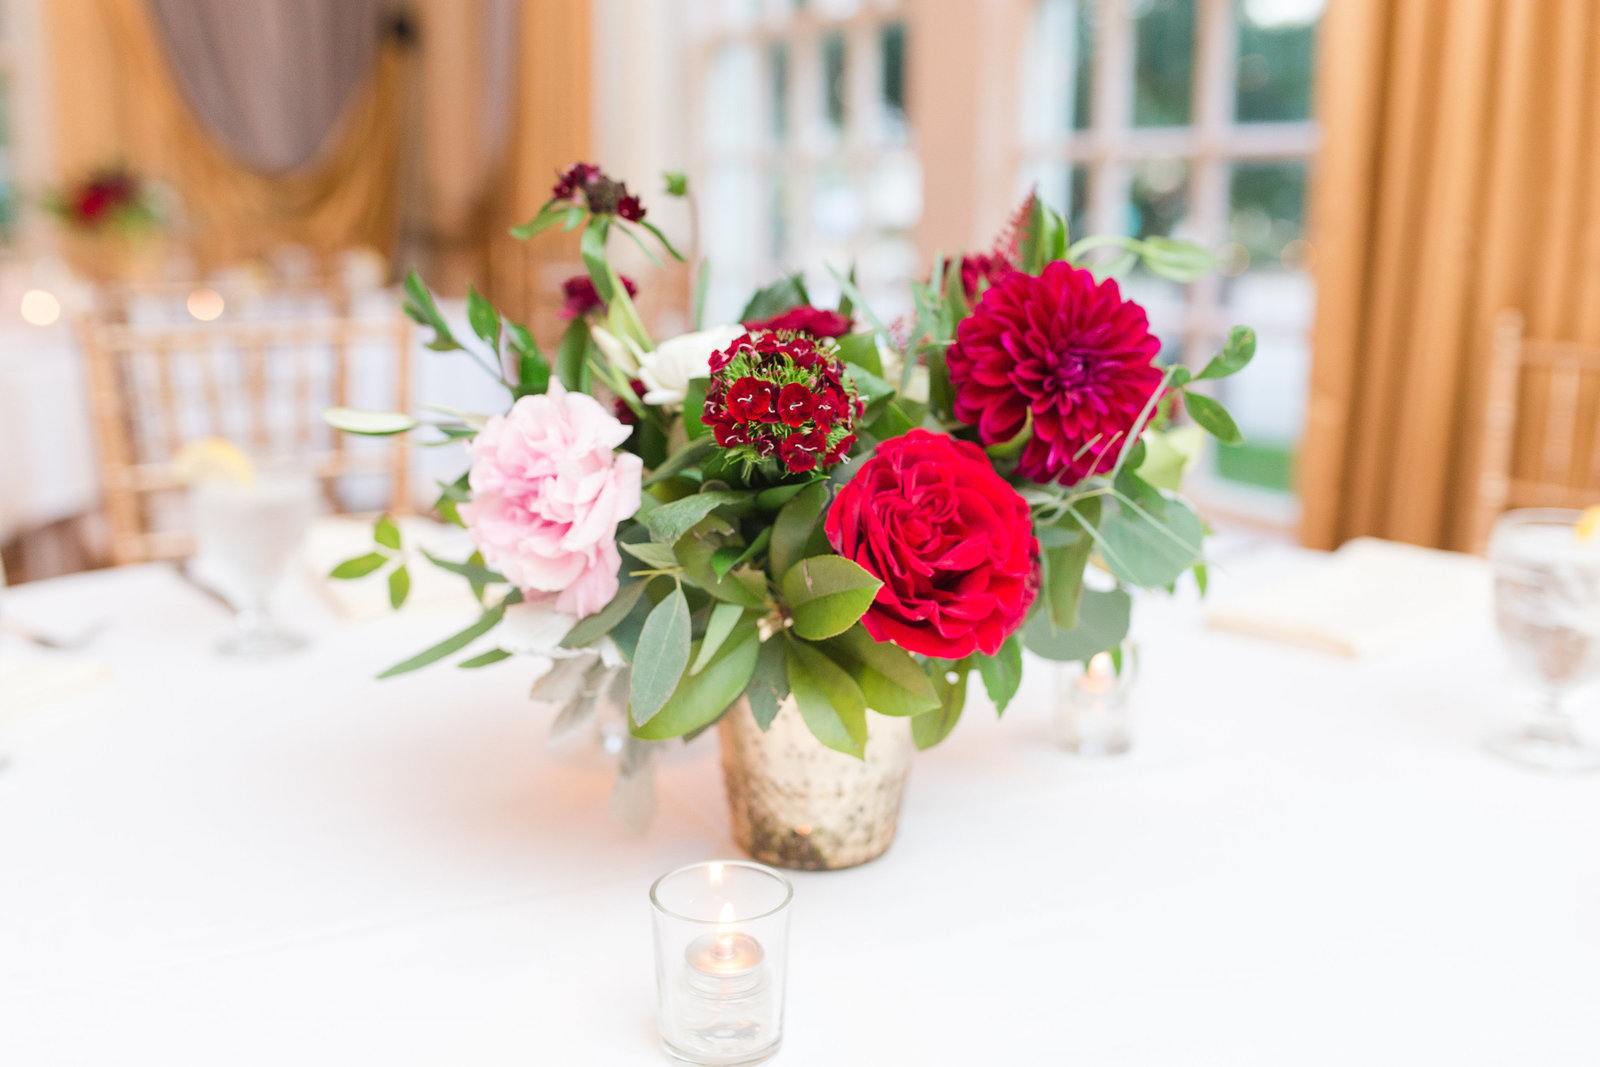 blush red and burgundy centerpiece from everly alaine florals at a luxury hotel wedding reception